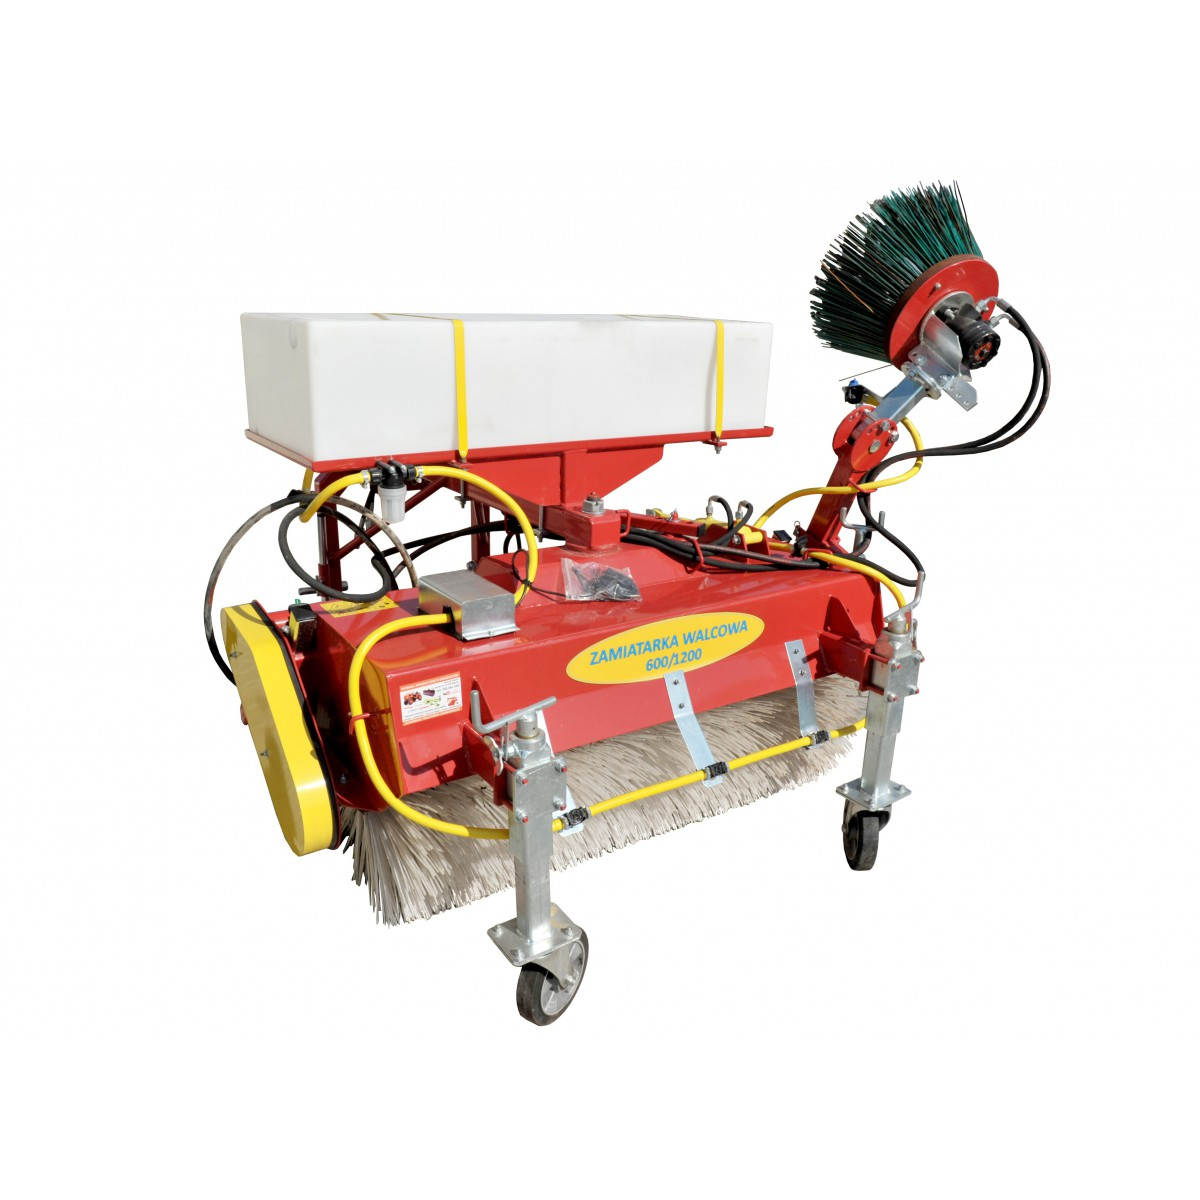 600/1200 mm roller street sweeper with watering container and side brush